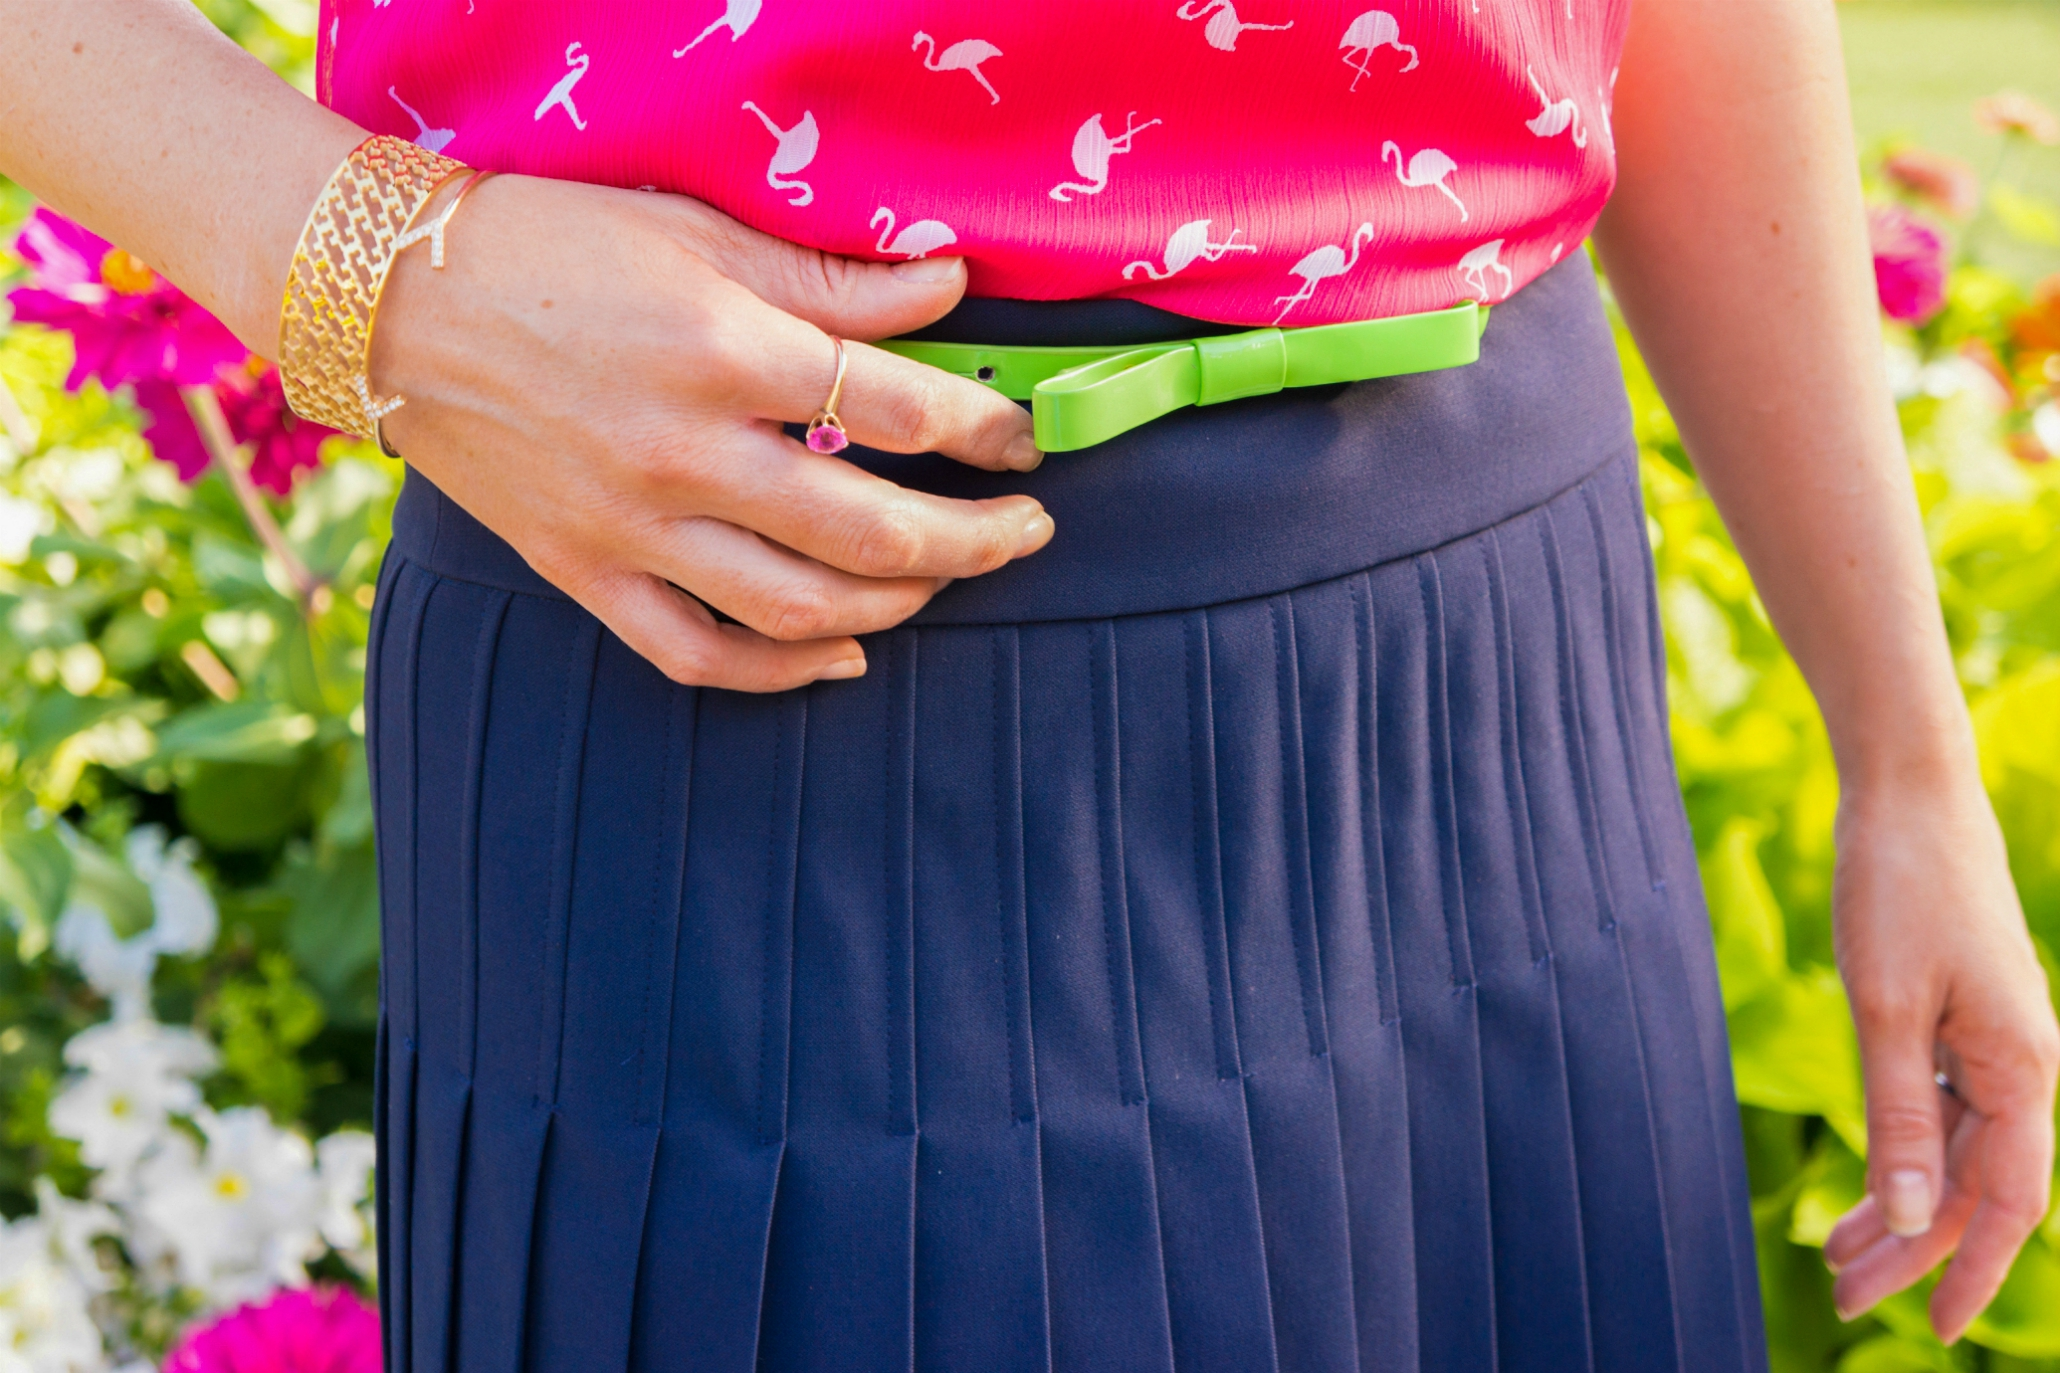 The Sugared Lemon summer time preppy pink flamingo outfit and pleated skirt